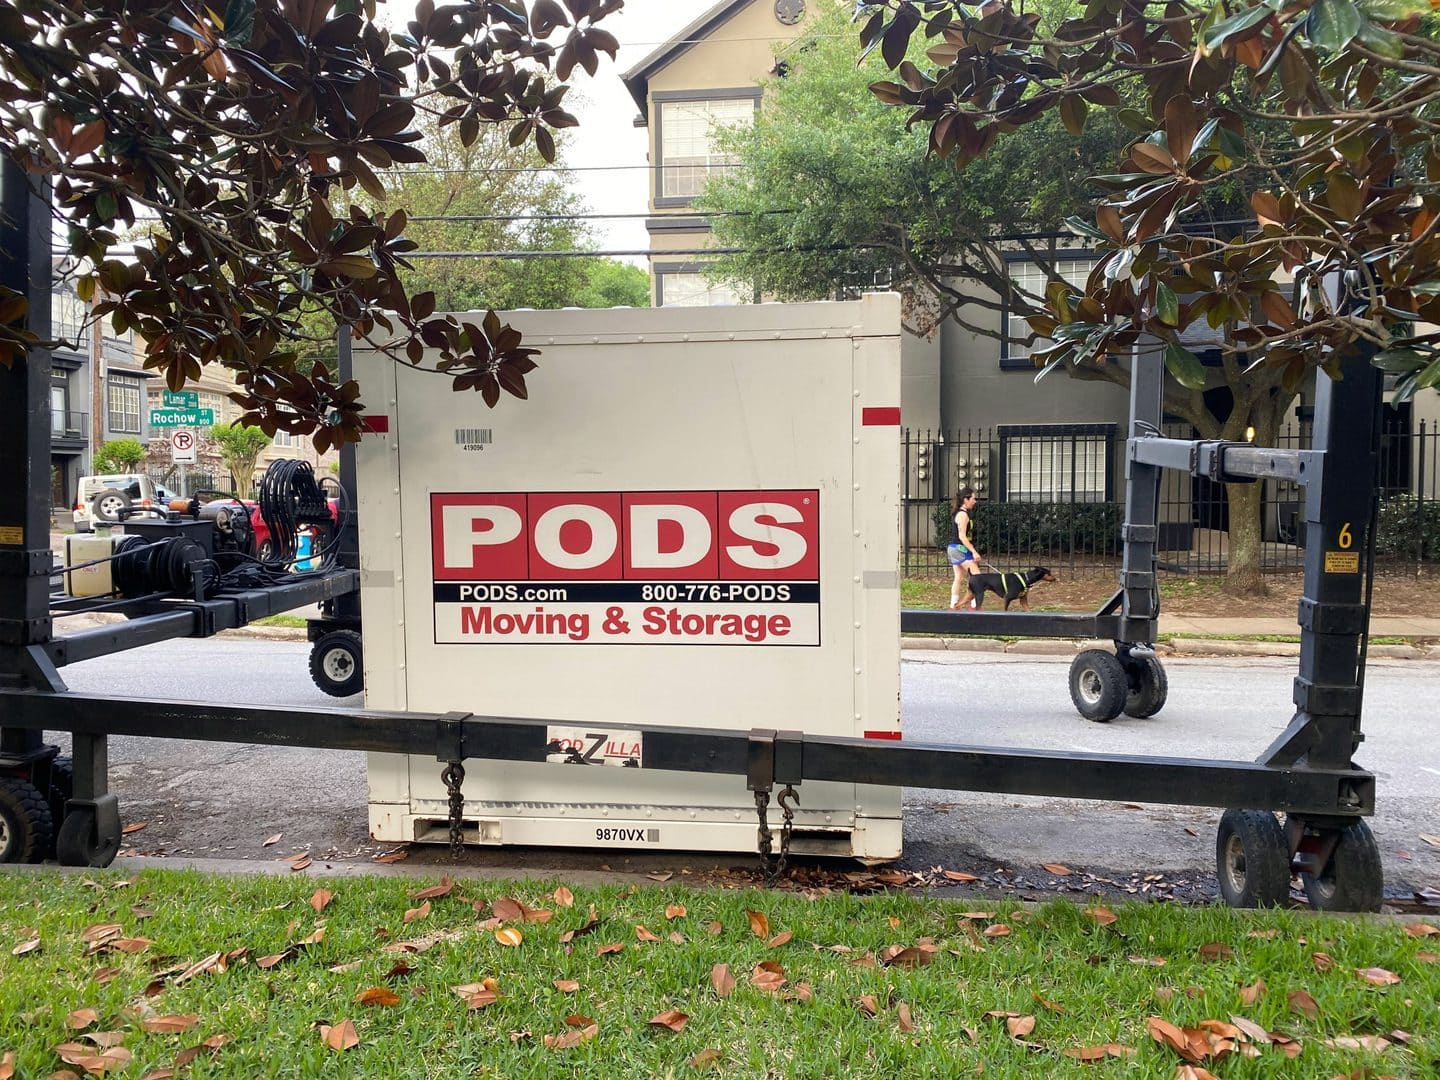 PODS container delivery system